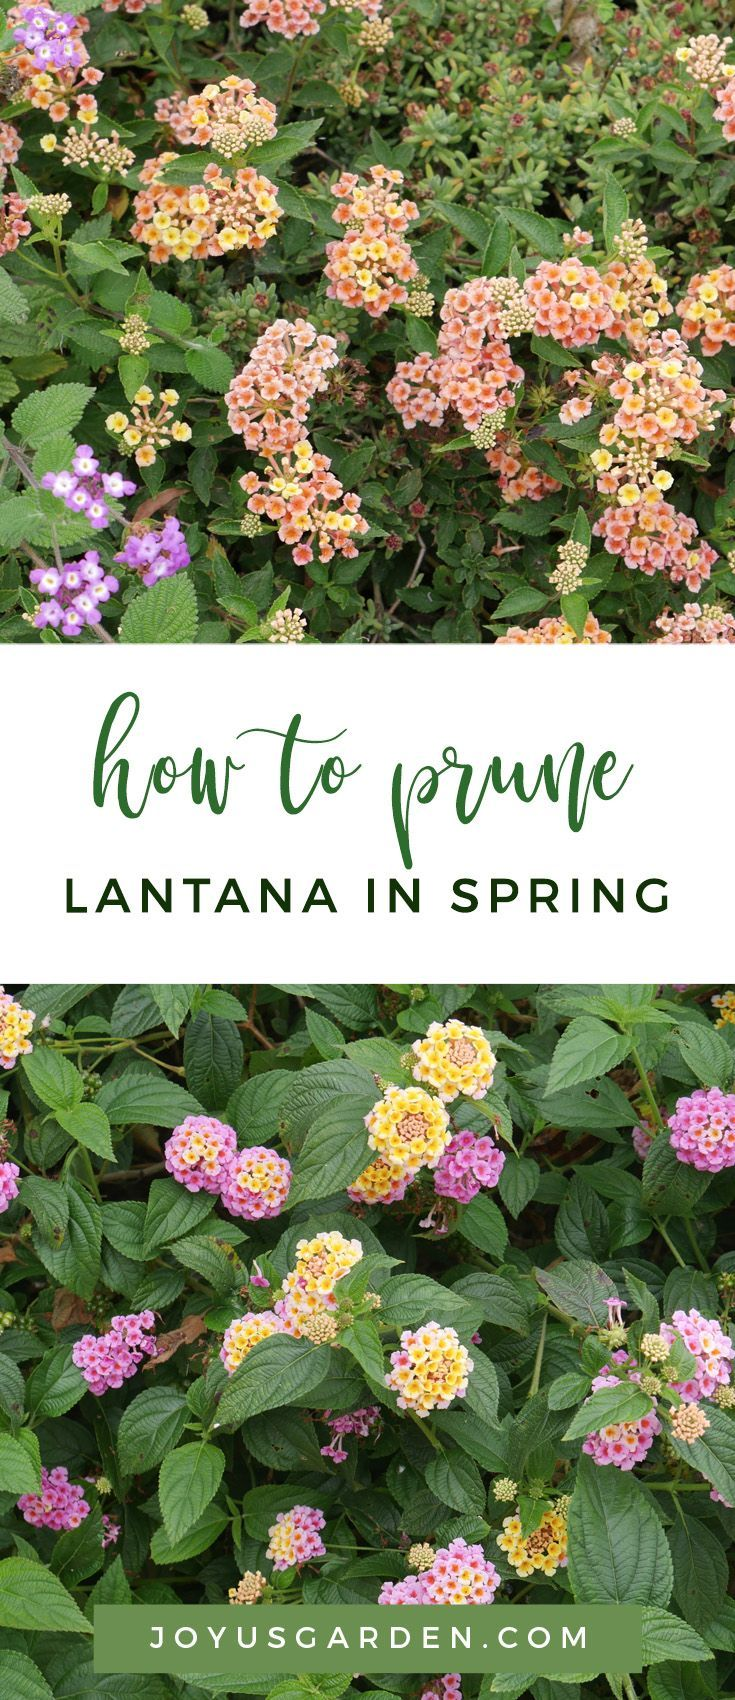 How To Prune 2 Different Types Of Lantana In Spring Joy Us Garden In 2020 Lantana Ground Cover Plants Arizona Gardening